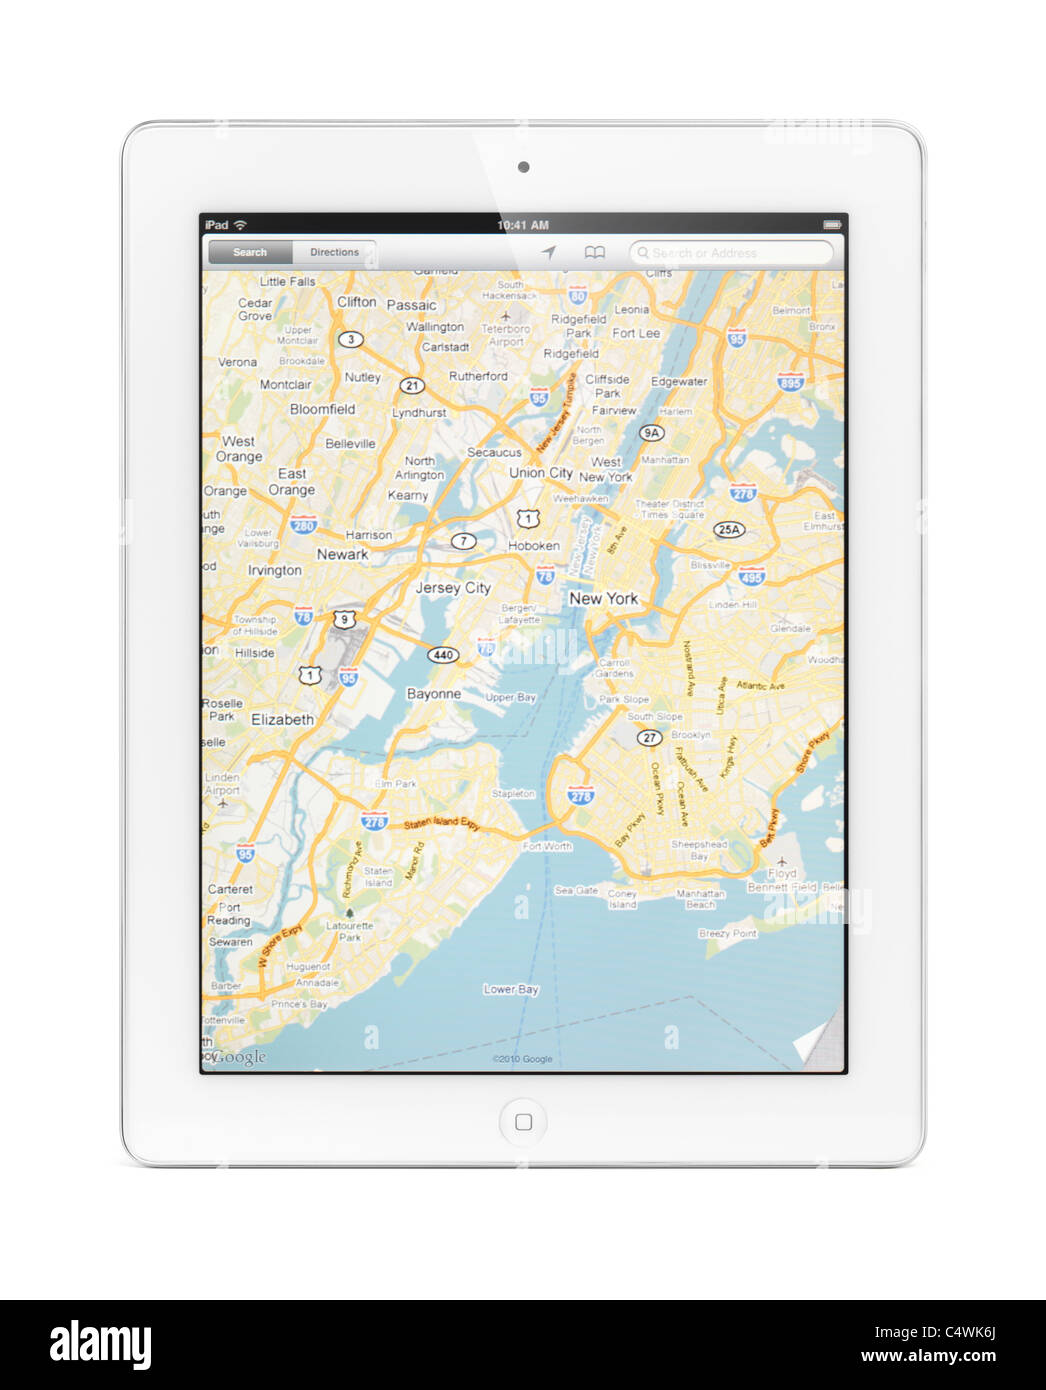 Apple ipad 2 tablet computer with a map of new york by google maps apple ipad 2 tablet computer with a map of new york by google maps on its display isolated on white background gumiabroncs Gallery